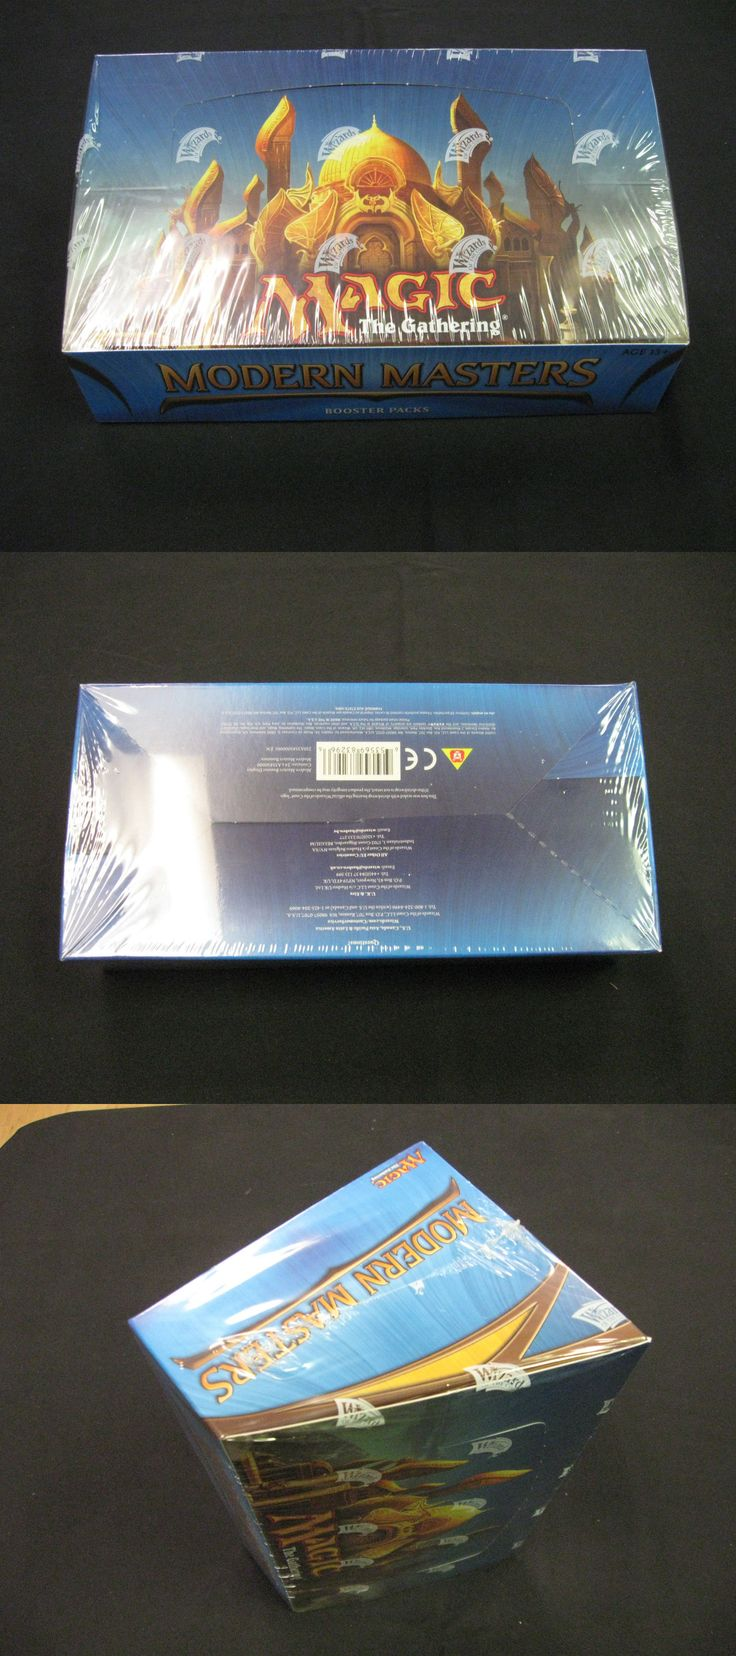 MTG Sealed Booster Packs 19109: Magic Mtg Modern Masters 2013 Booster Box Factory Sealed English -> BUY IT NOW ONLY: $434.99 on eBay!